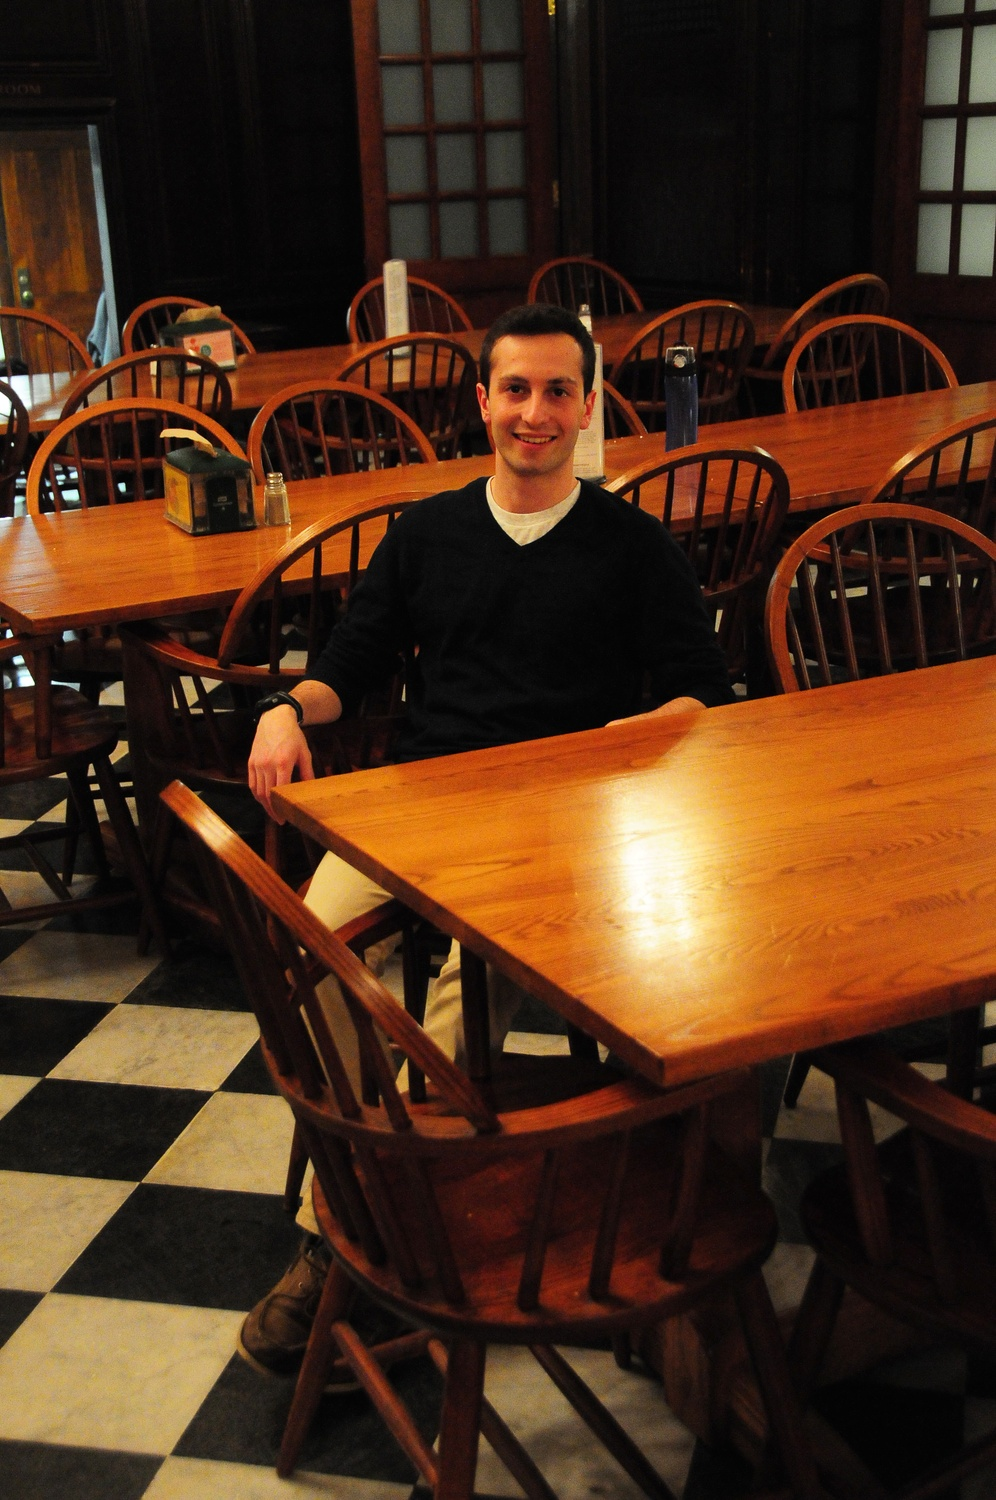 Jacob R. Carrel '16, president of the Harvard College Democrats, relaxes in Winthrop House dining hall on Monday night. Carrel is one of many students trying to balance House life and extracurricular obligations.